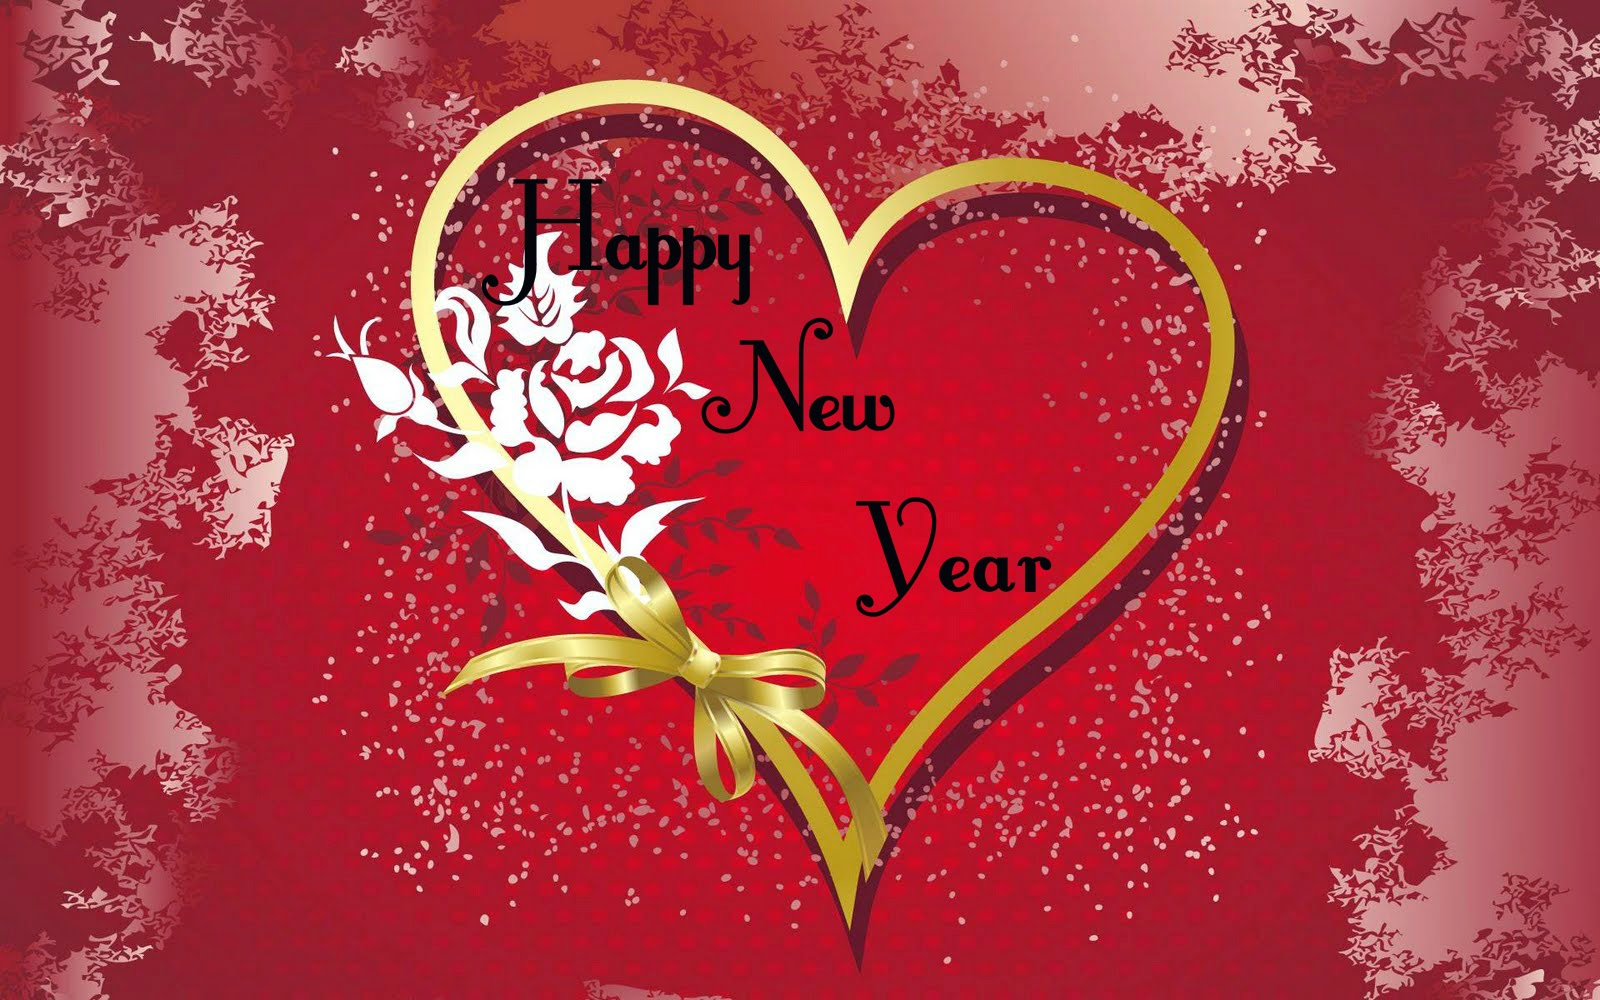 Happy New Year 2016 Greeting Cards For Gf